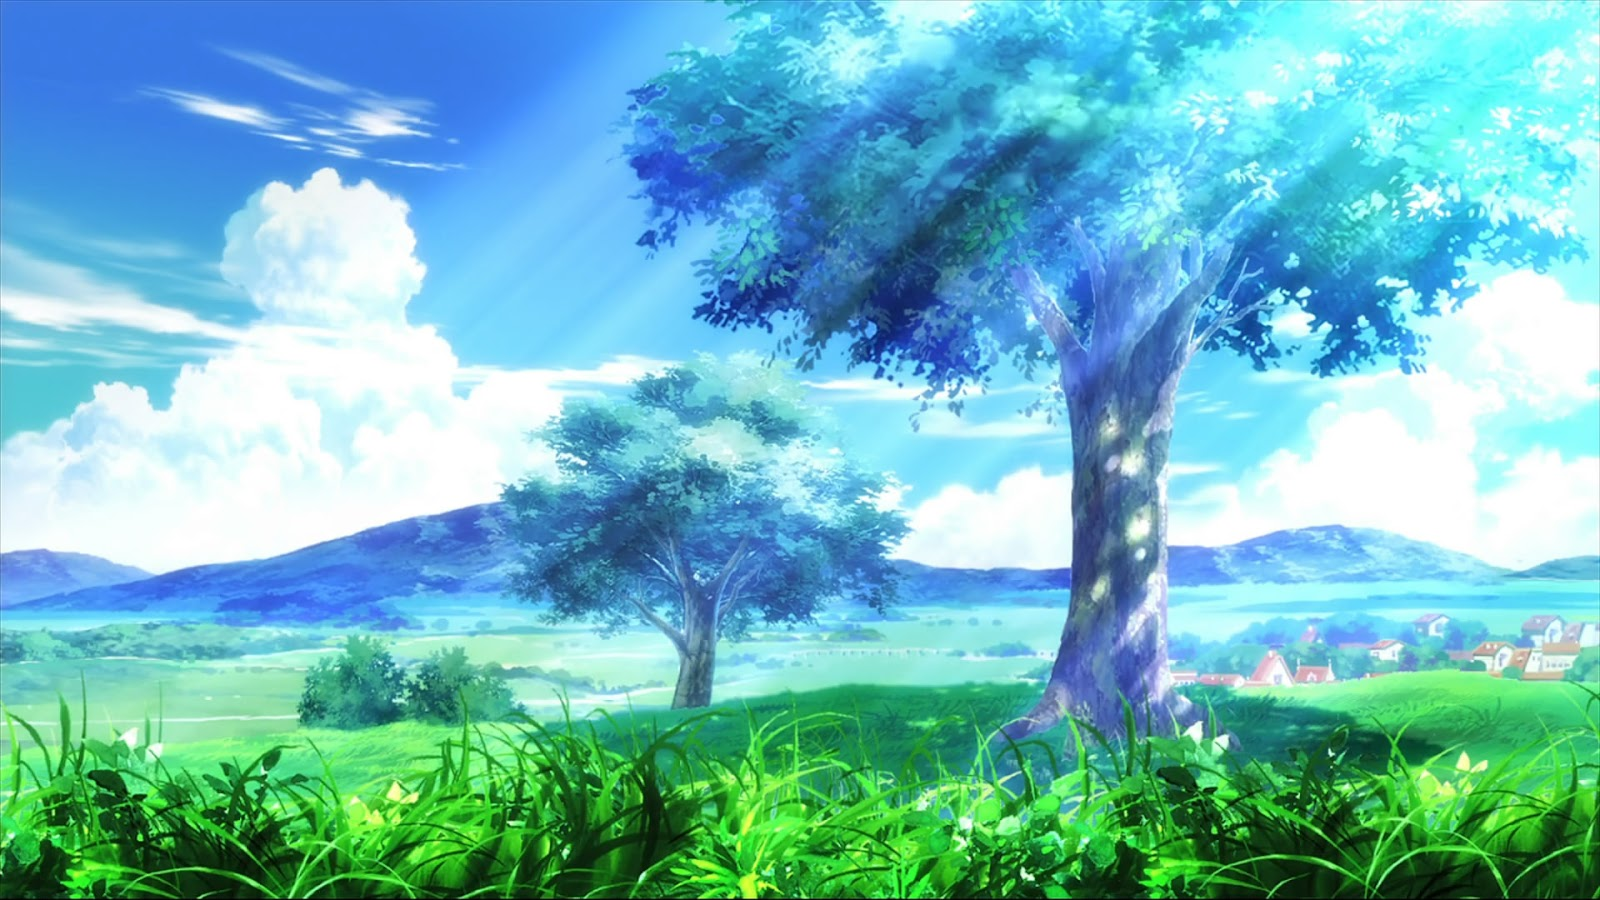 Beautiful places of the world enchanting wallpaper - Anime backgrounds com ...